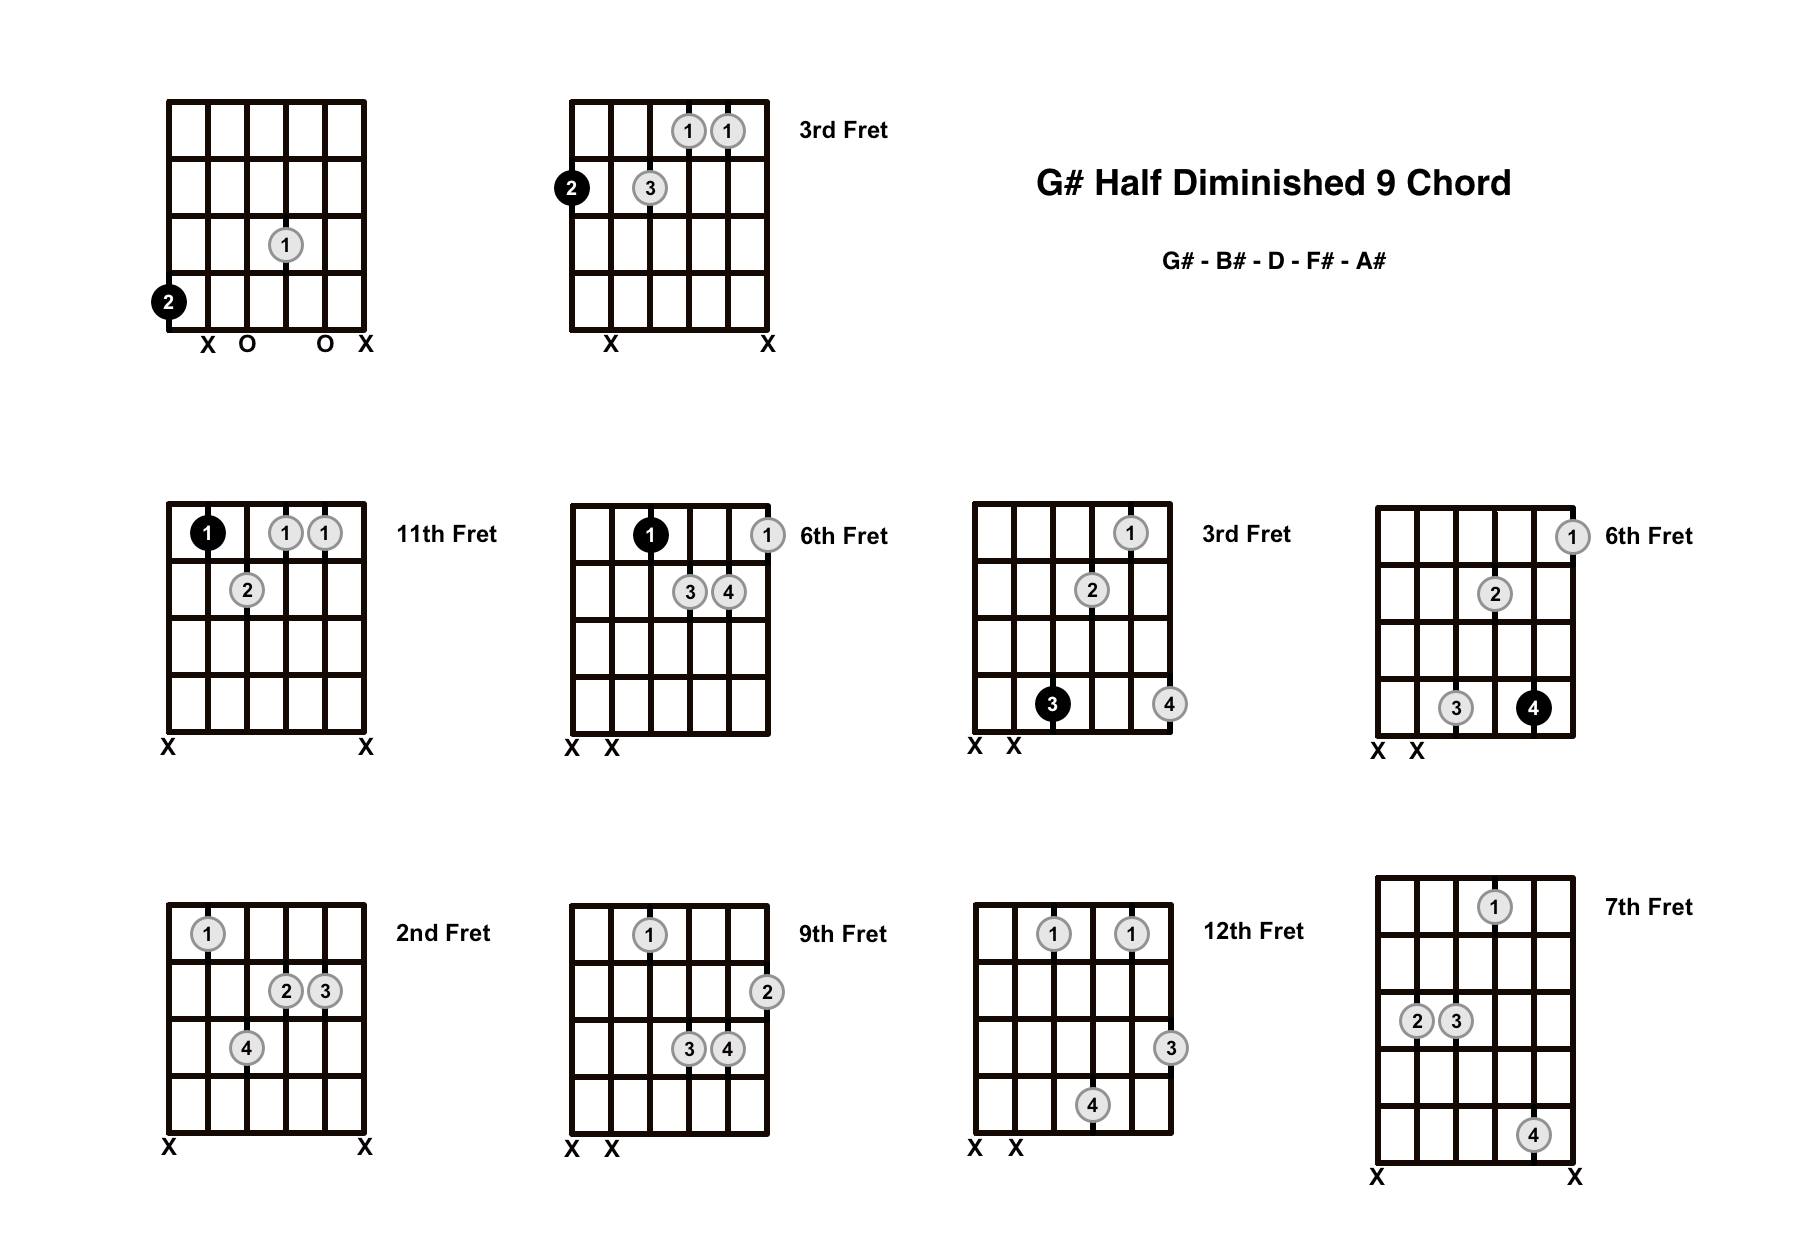 G#m9b5 Chord On The Guitar (G Sharp Half Diminished 9) – Diagrams, Finger Positions and Theory